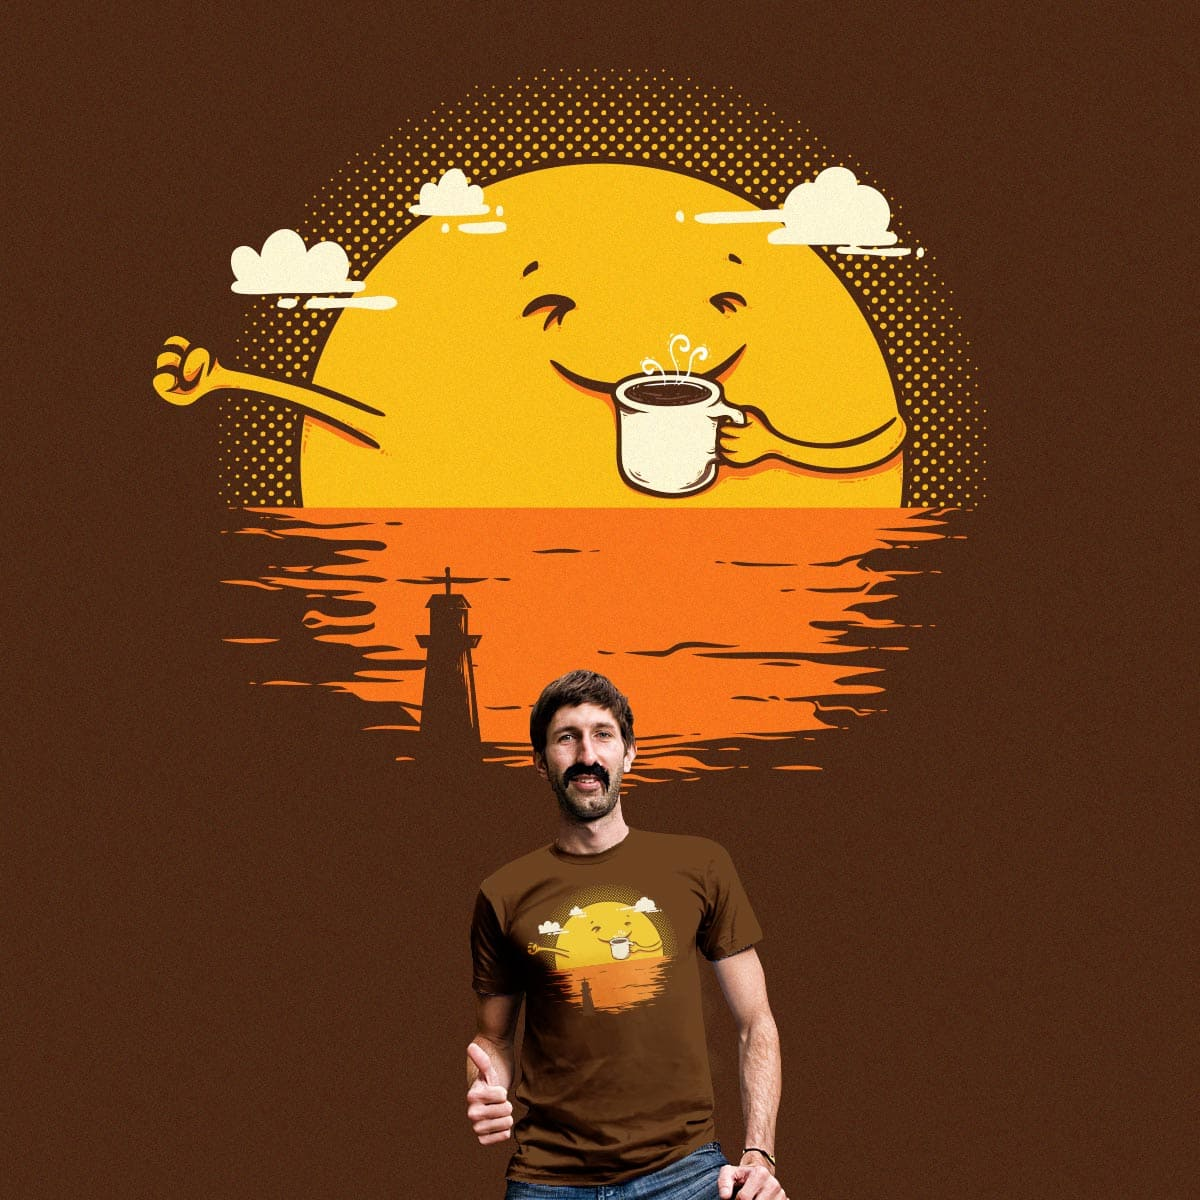 Start the day right by Robo Rat and rua_bloodrust on Threadless